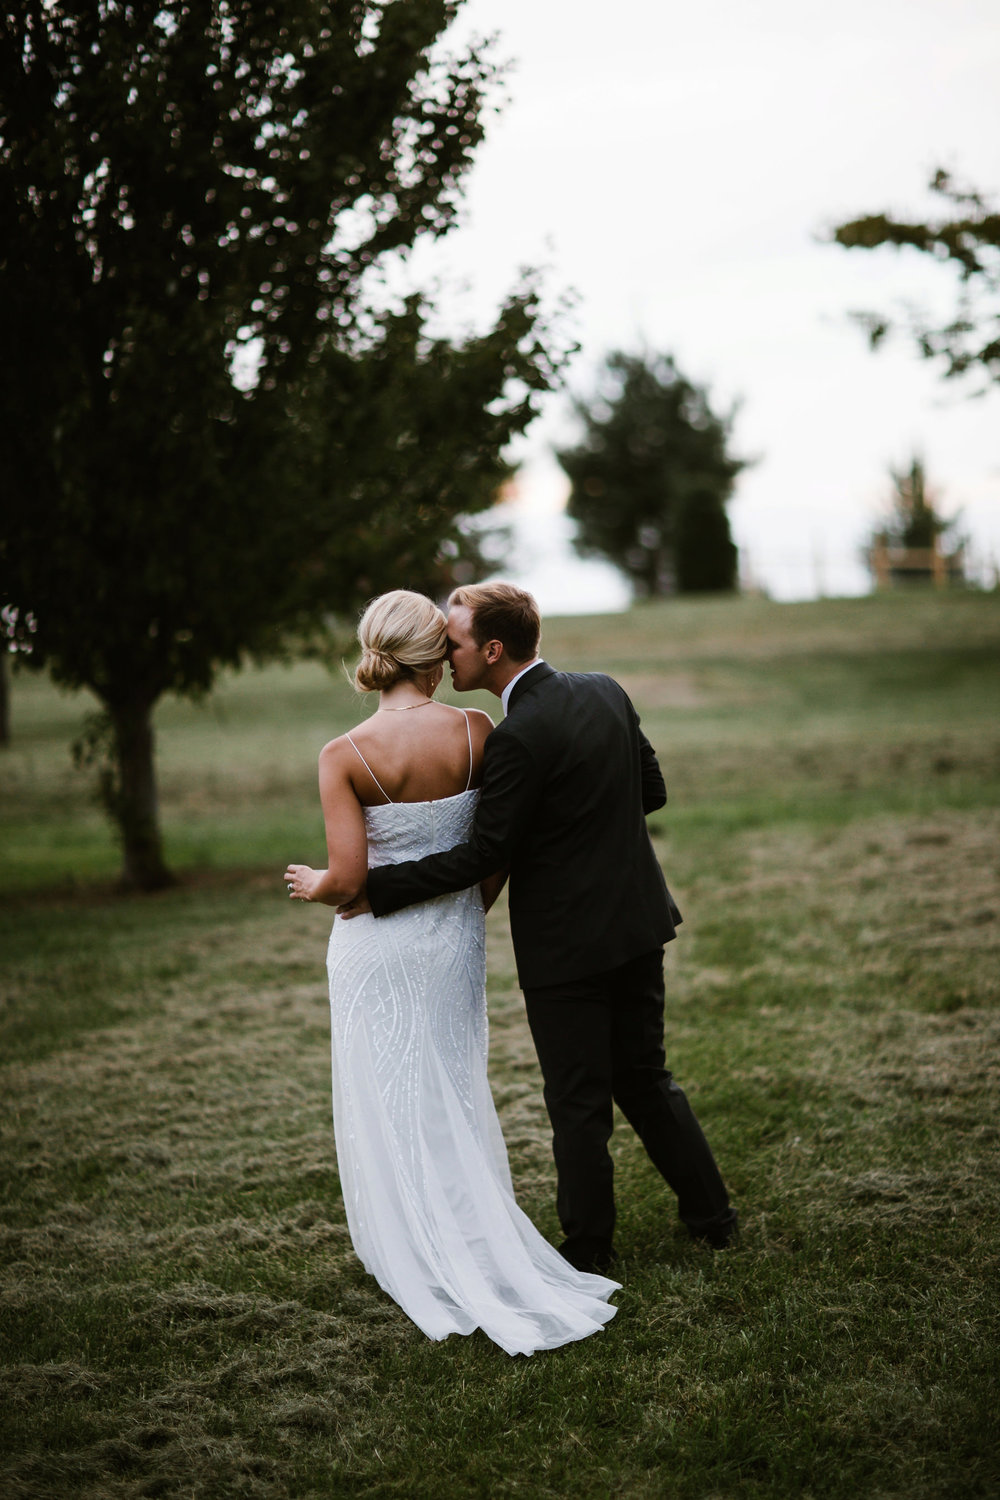 Alldredge Orchard Kansas City_Kindling Wedding Photography BLOG 61.JPG